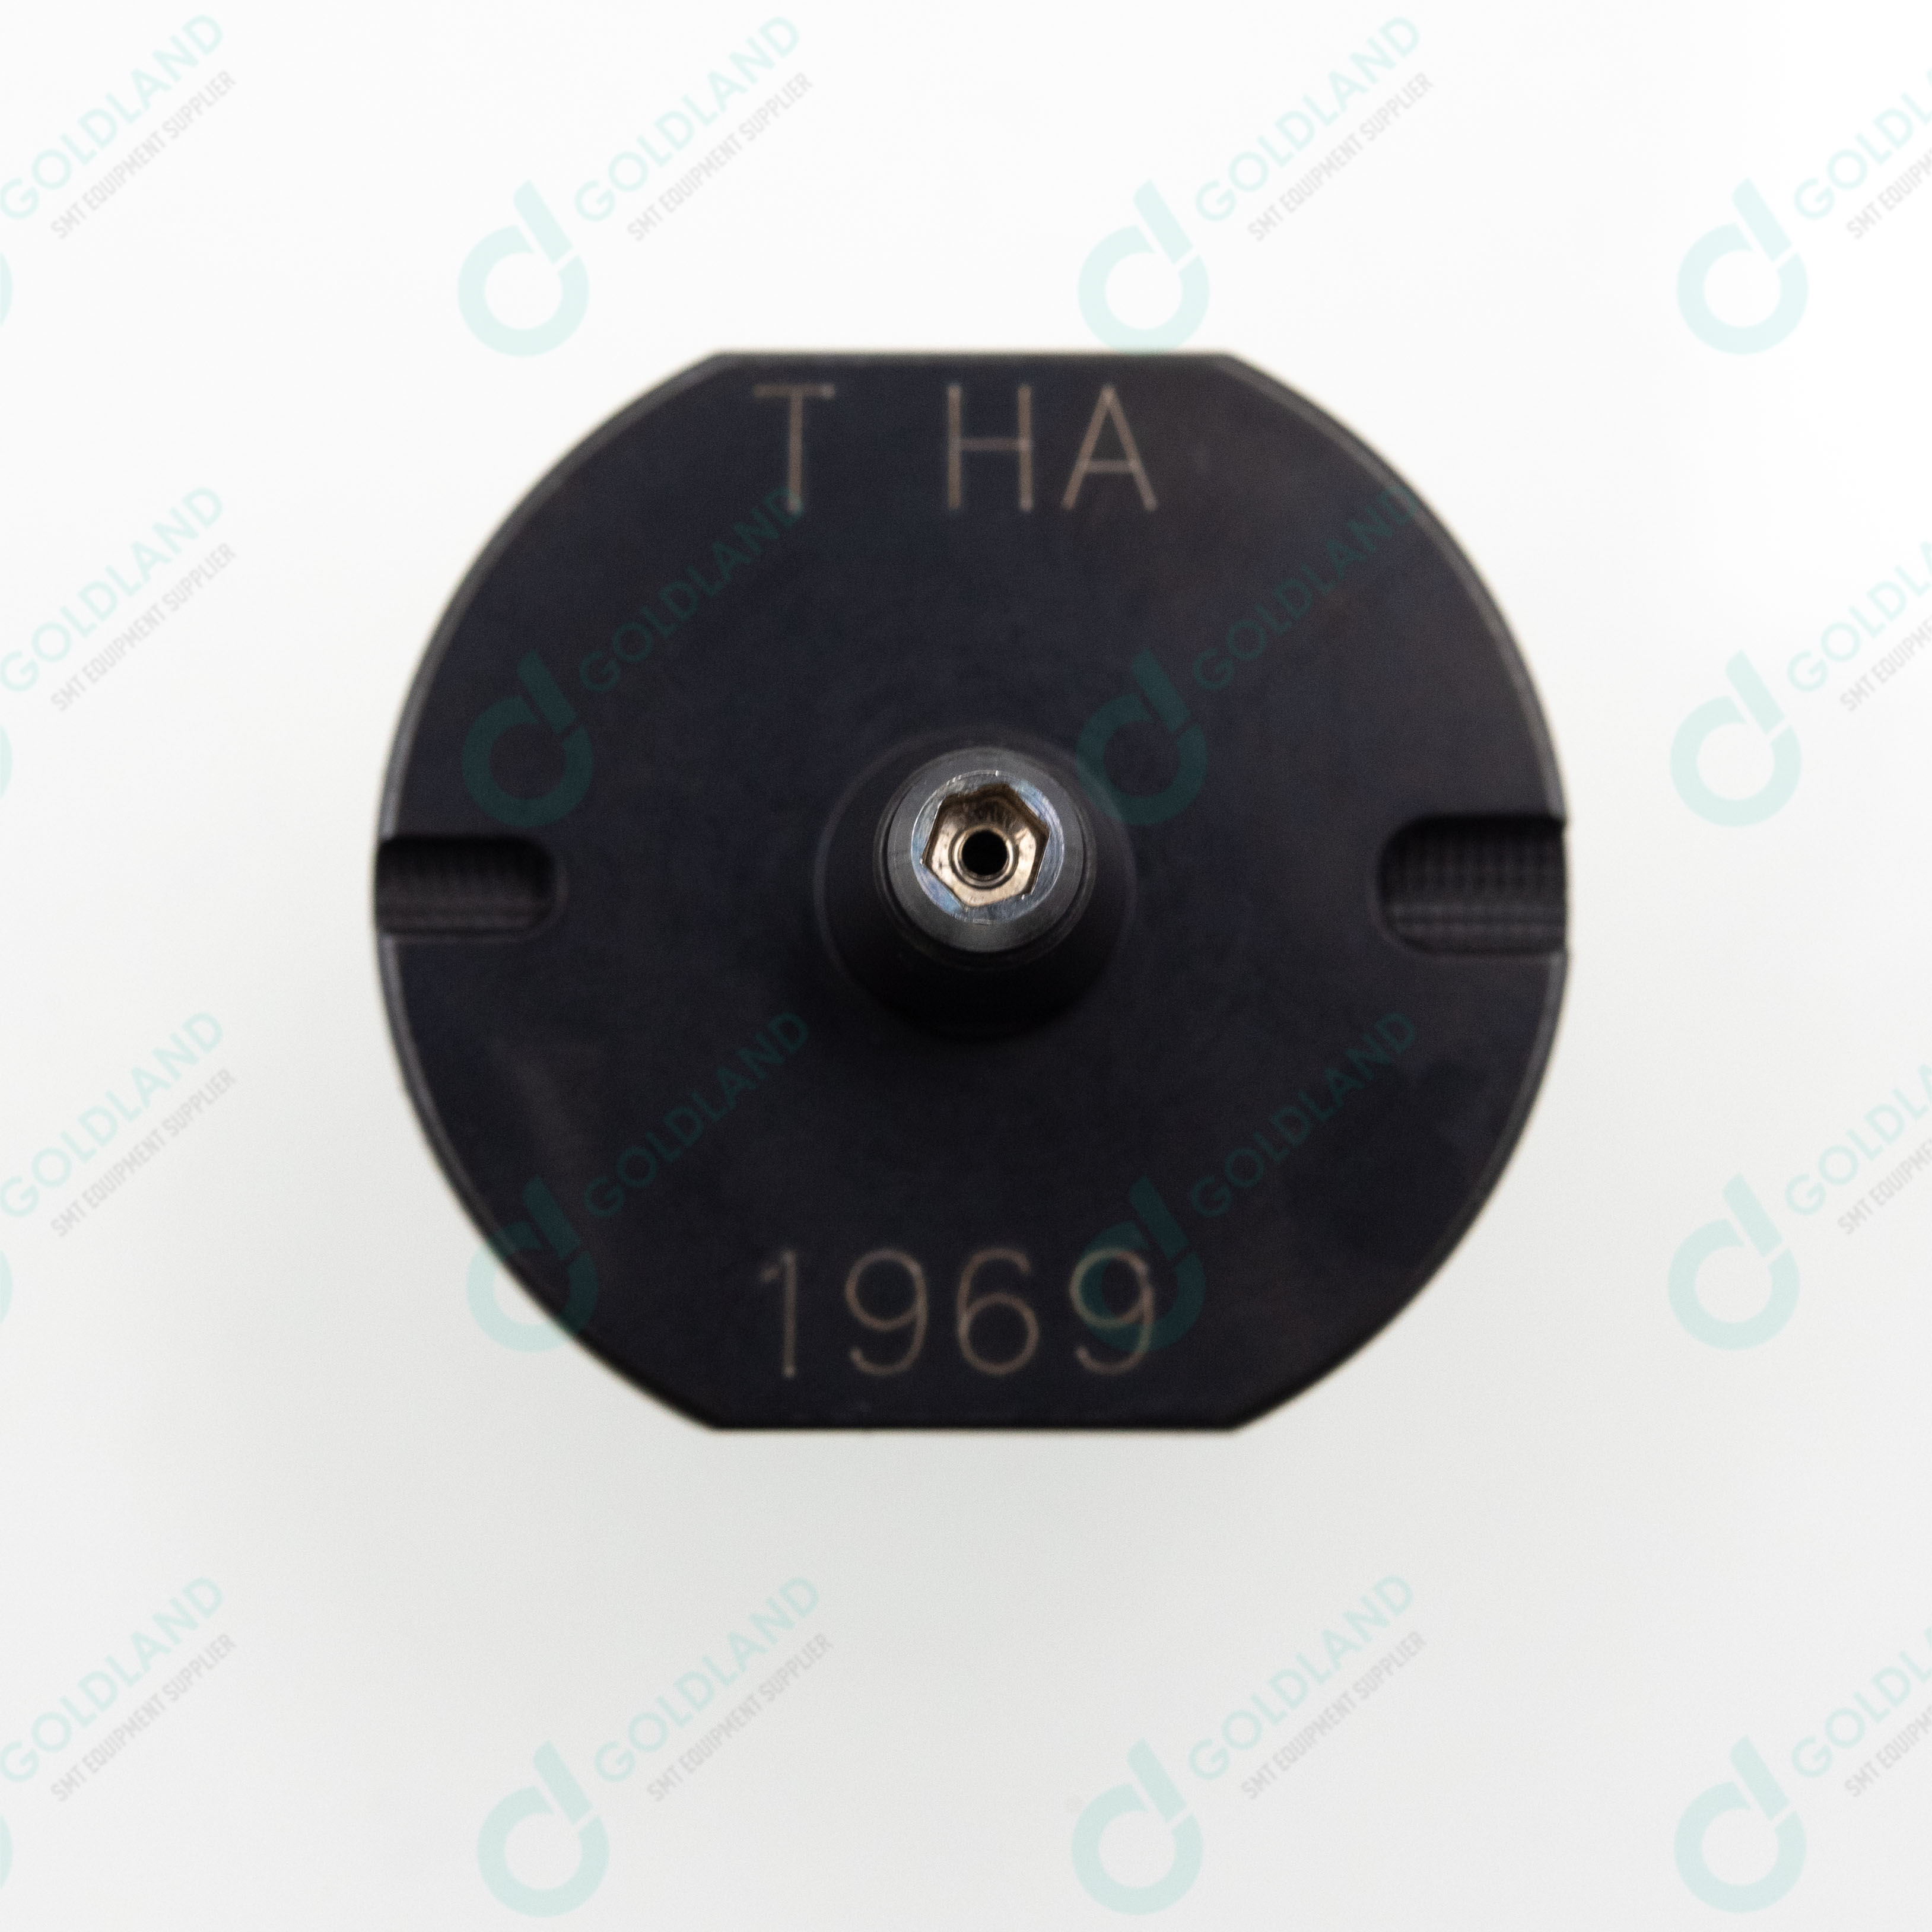 Panasonic 1969 Nozzle for Panasonic smt machine parts